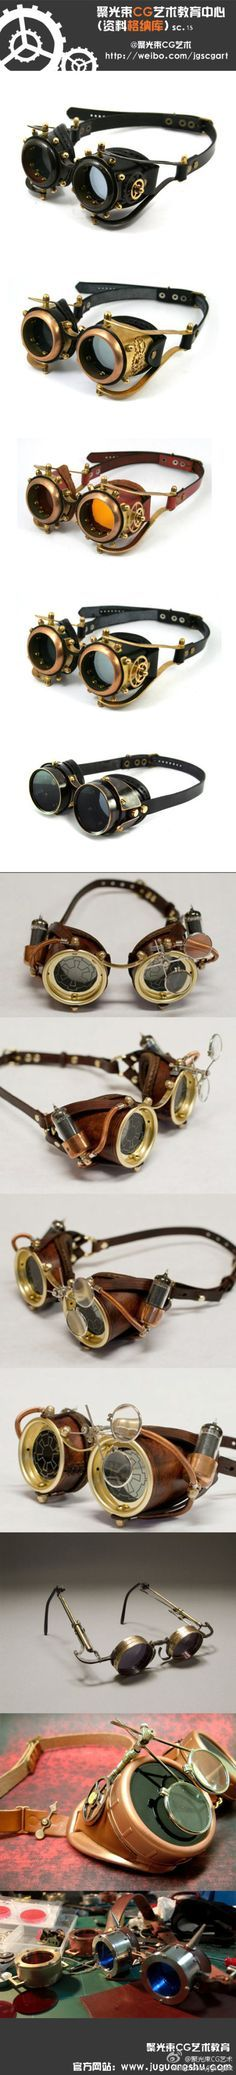 Cool steampunk eyewear.  I'd wear these while ridding my bike